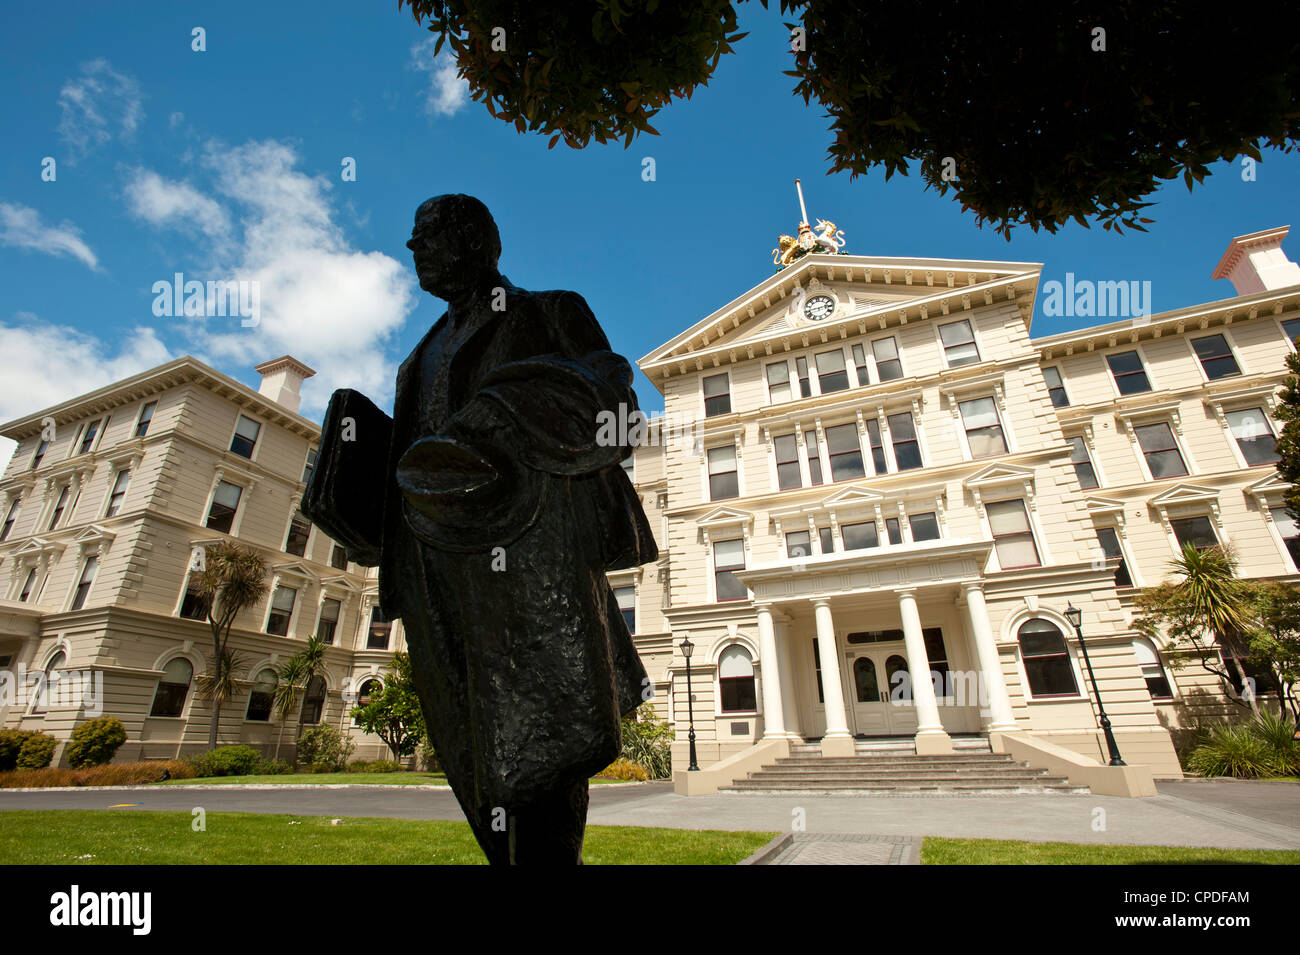 Government buildings, Wellington, North Island, New Zealand, Pacific - Stock Image